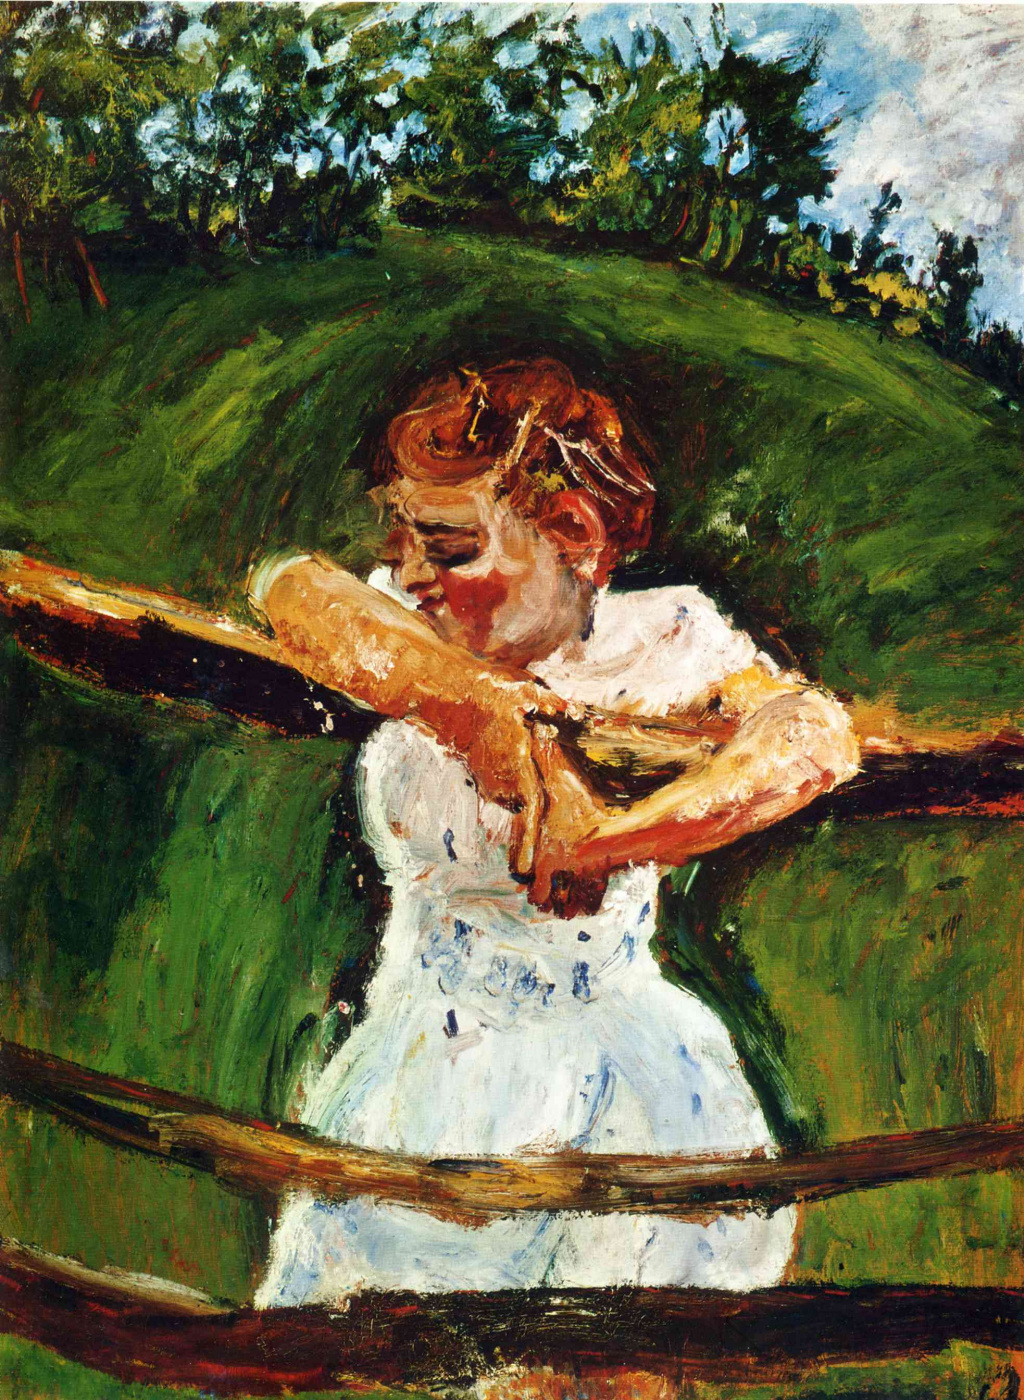 Chaim Soutine. The girl on the fence